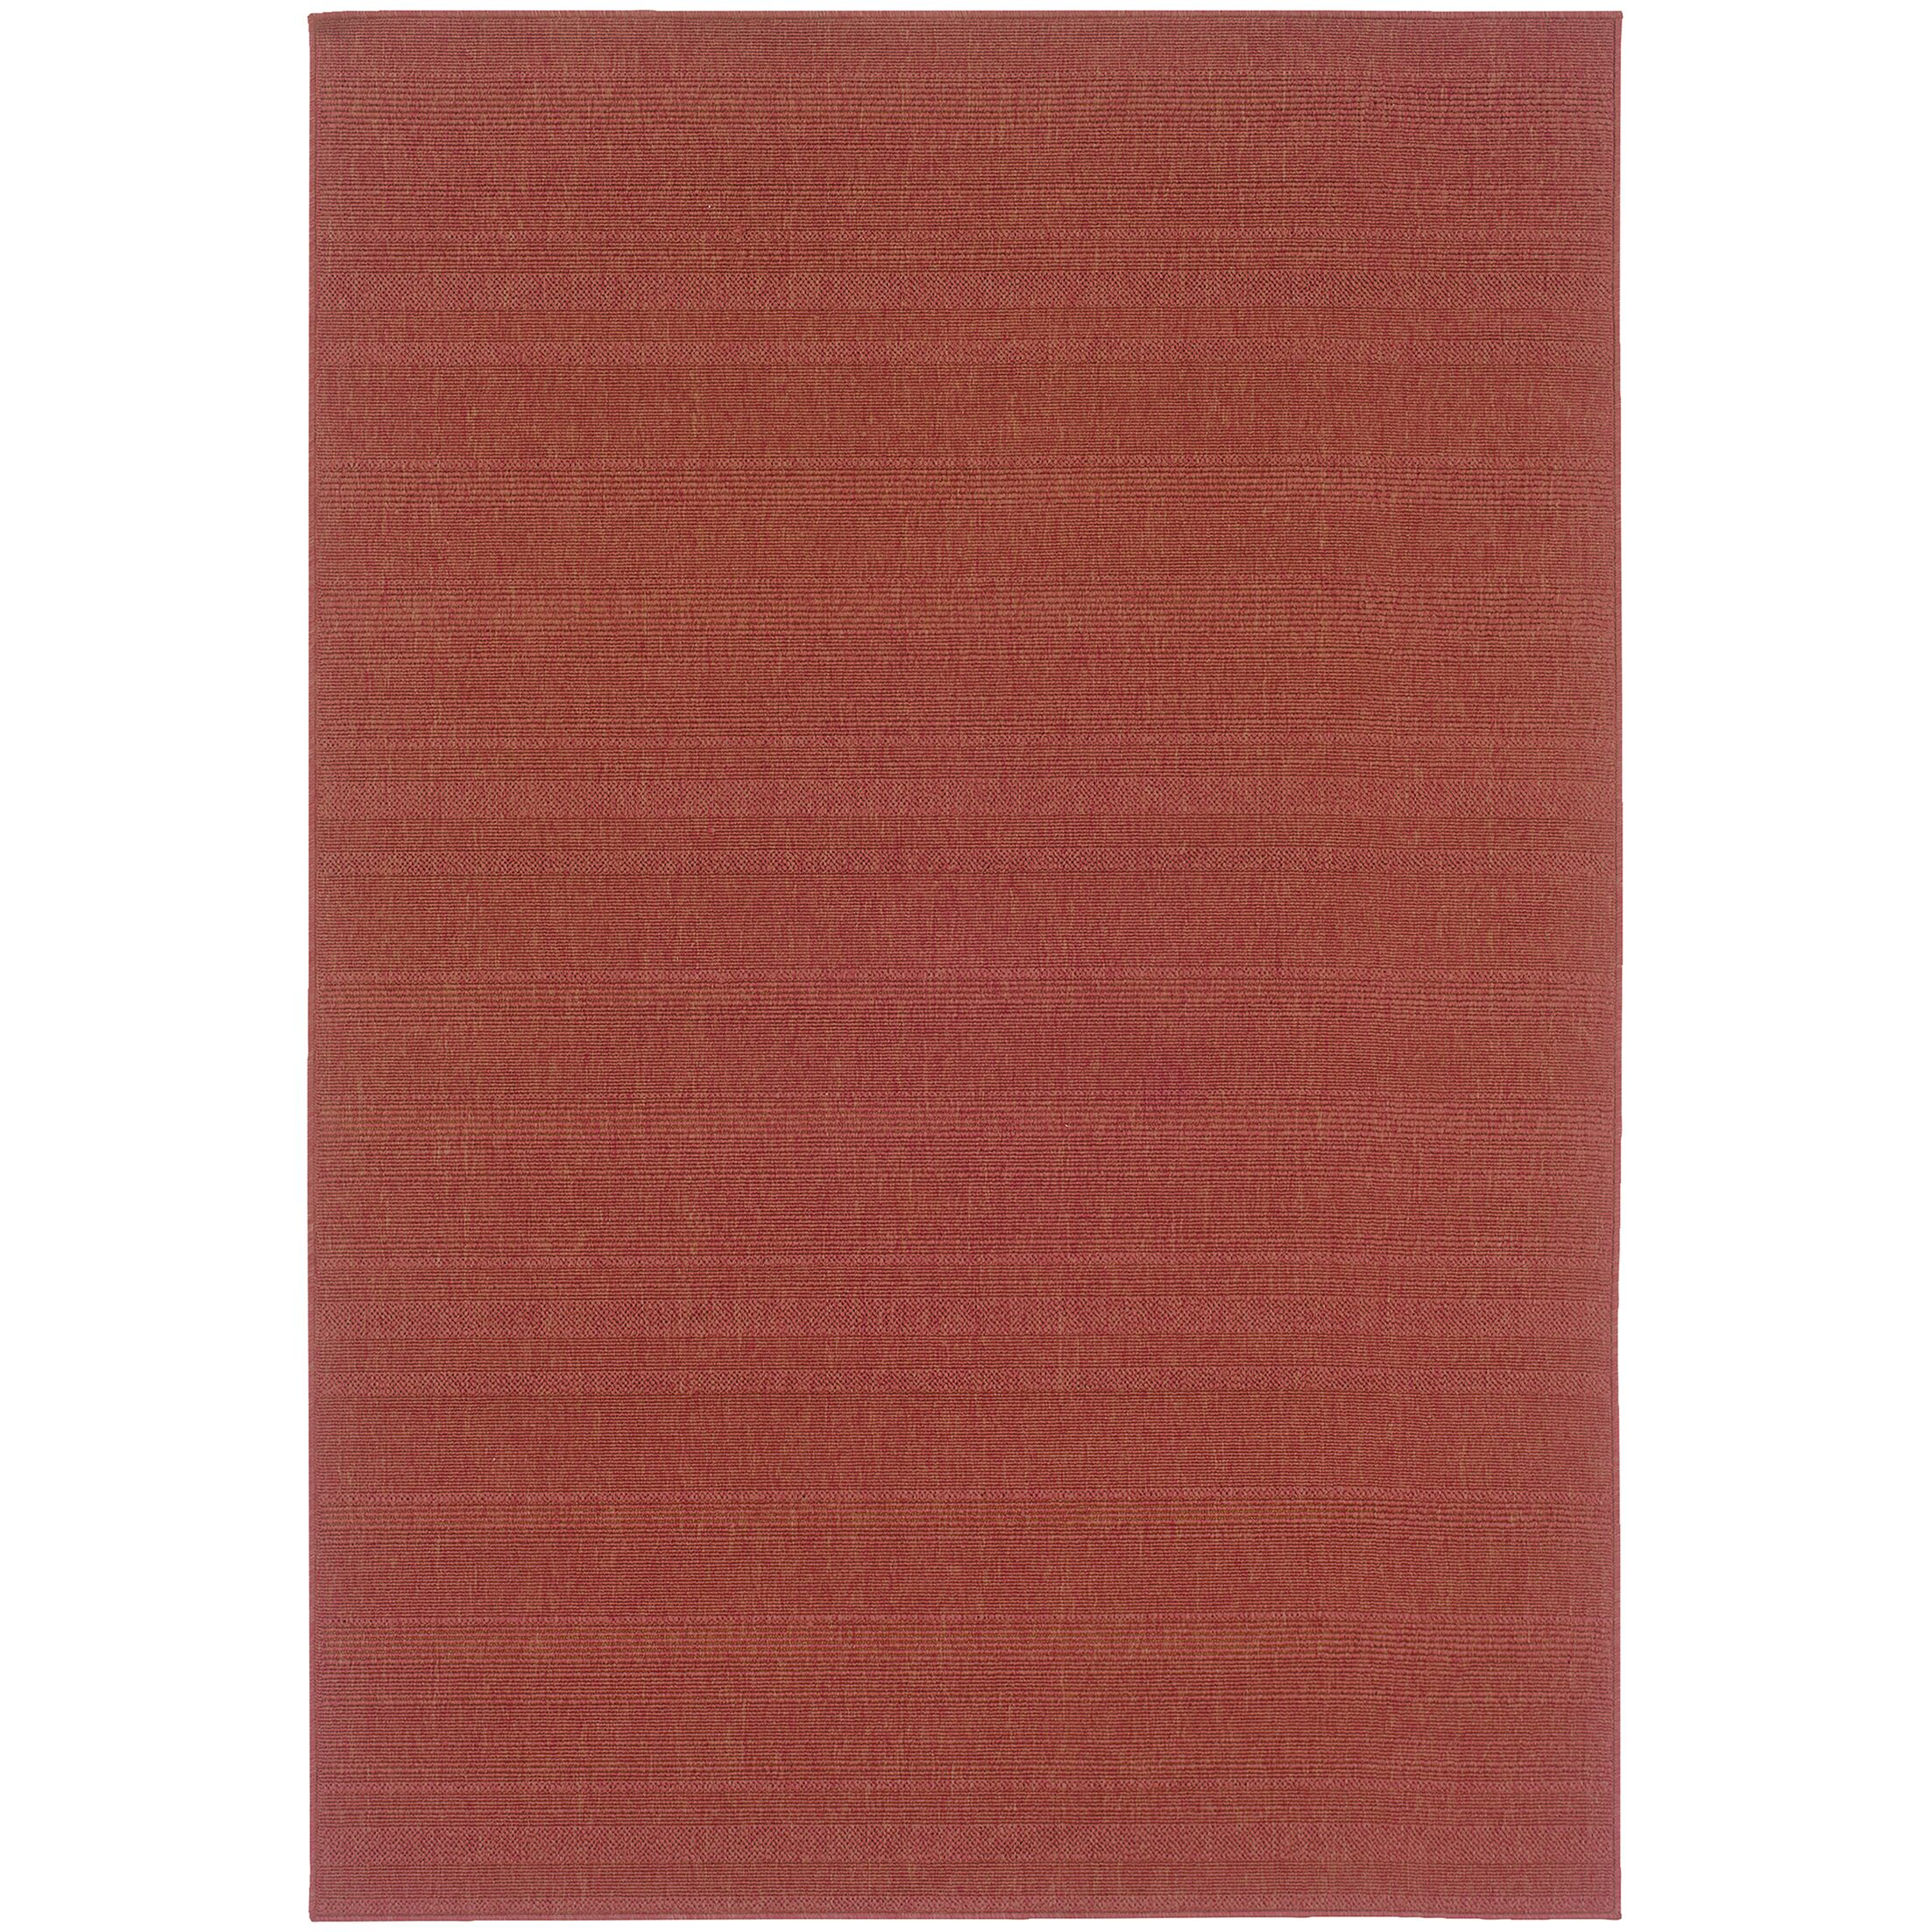 Kelli Red Indoor/Outdoor Area Rug Rug Size: Rectangle 6'3